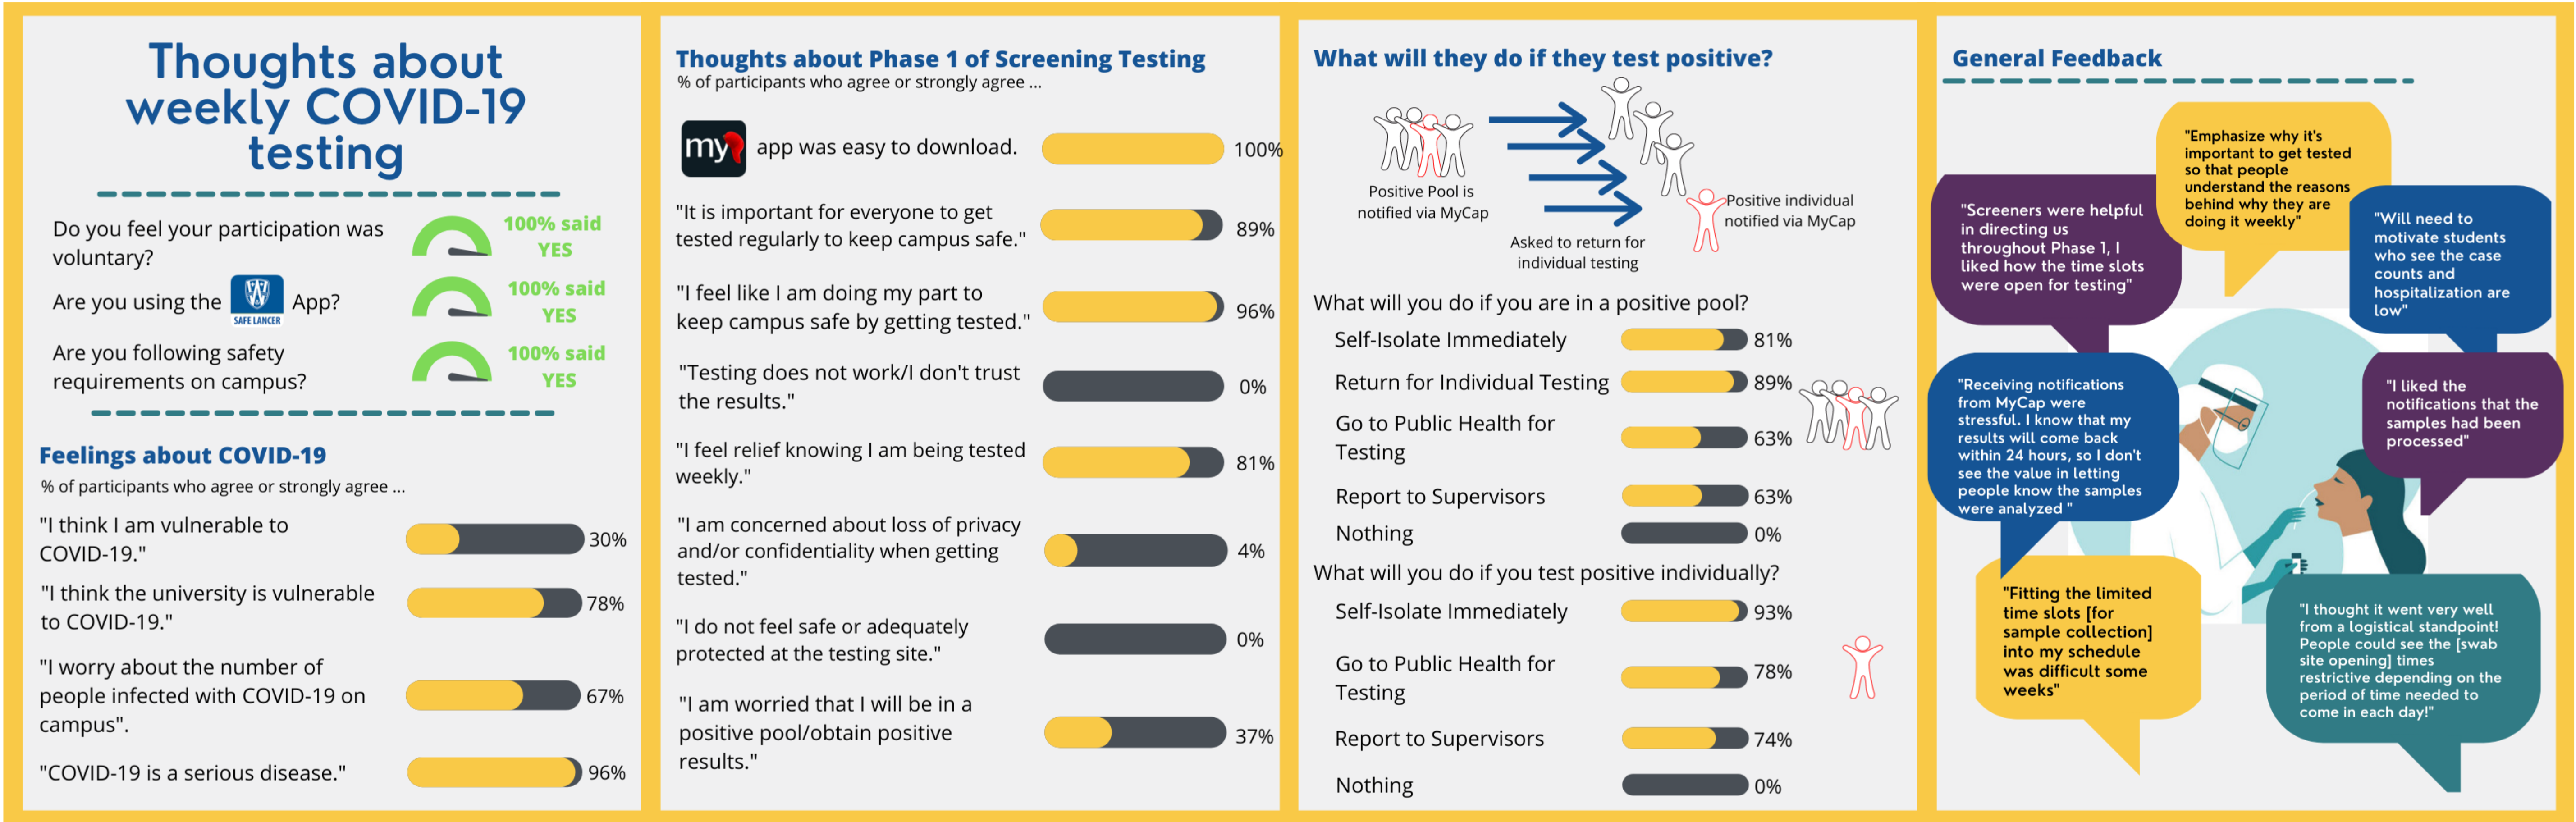 COVID Screening Platform Phase 1 Participant Satisfaction Outcomes